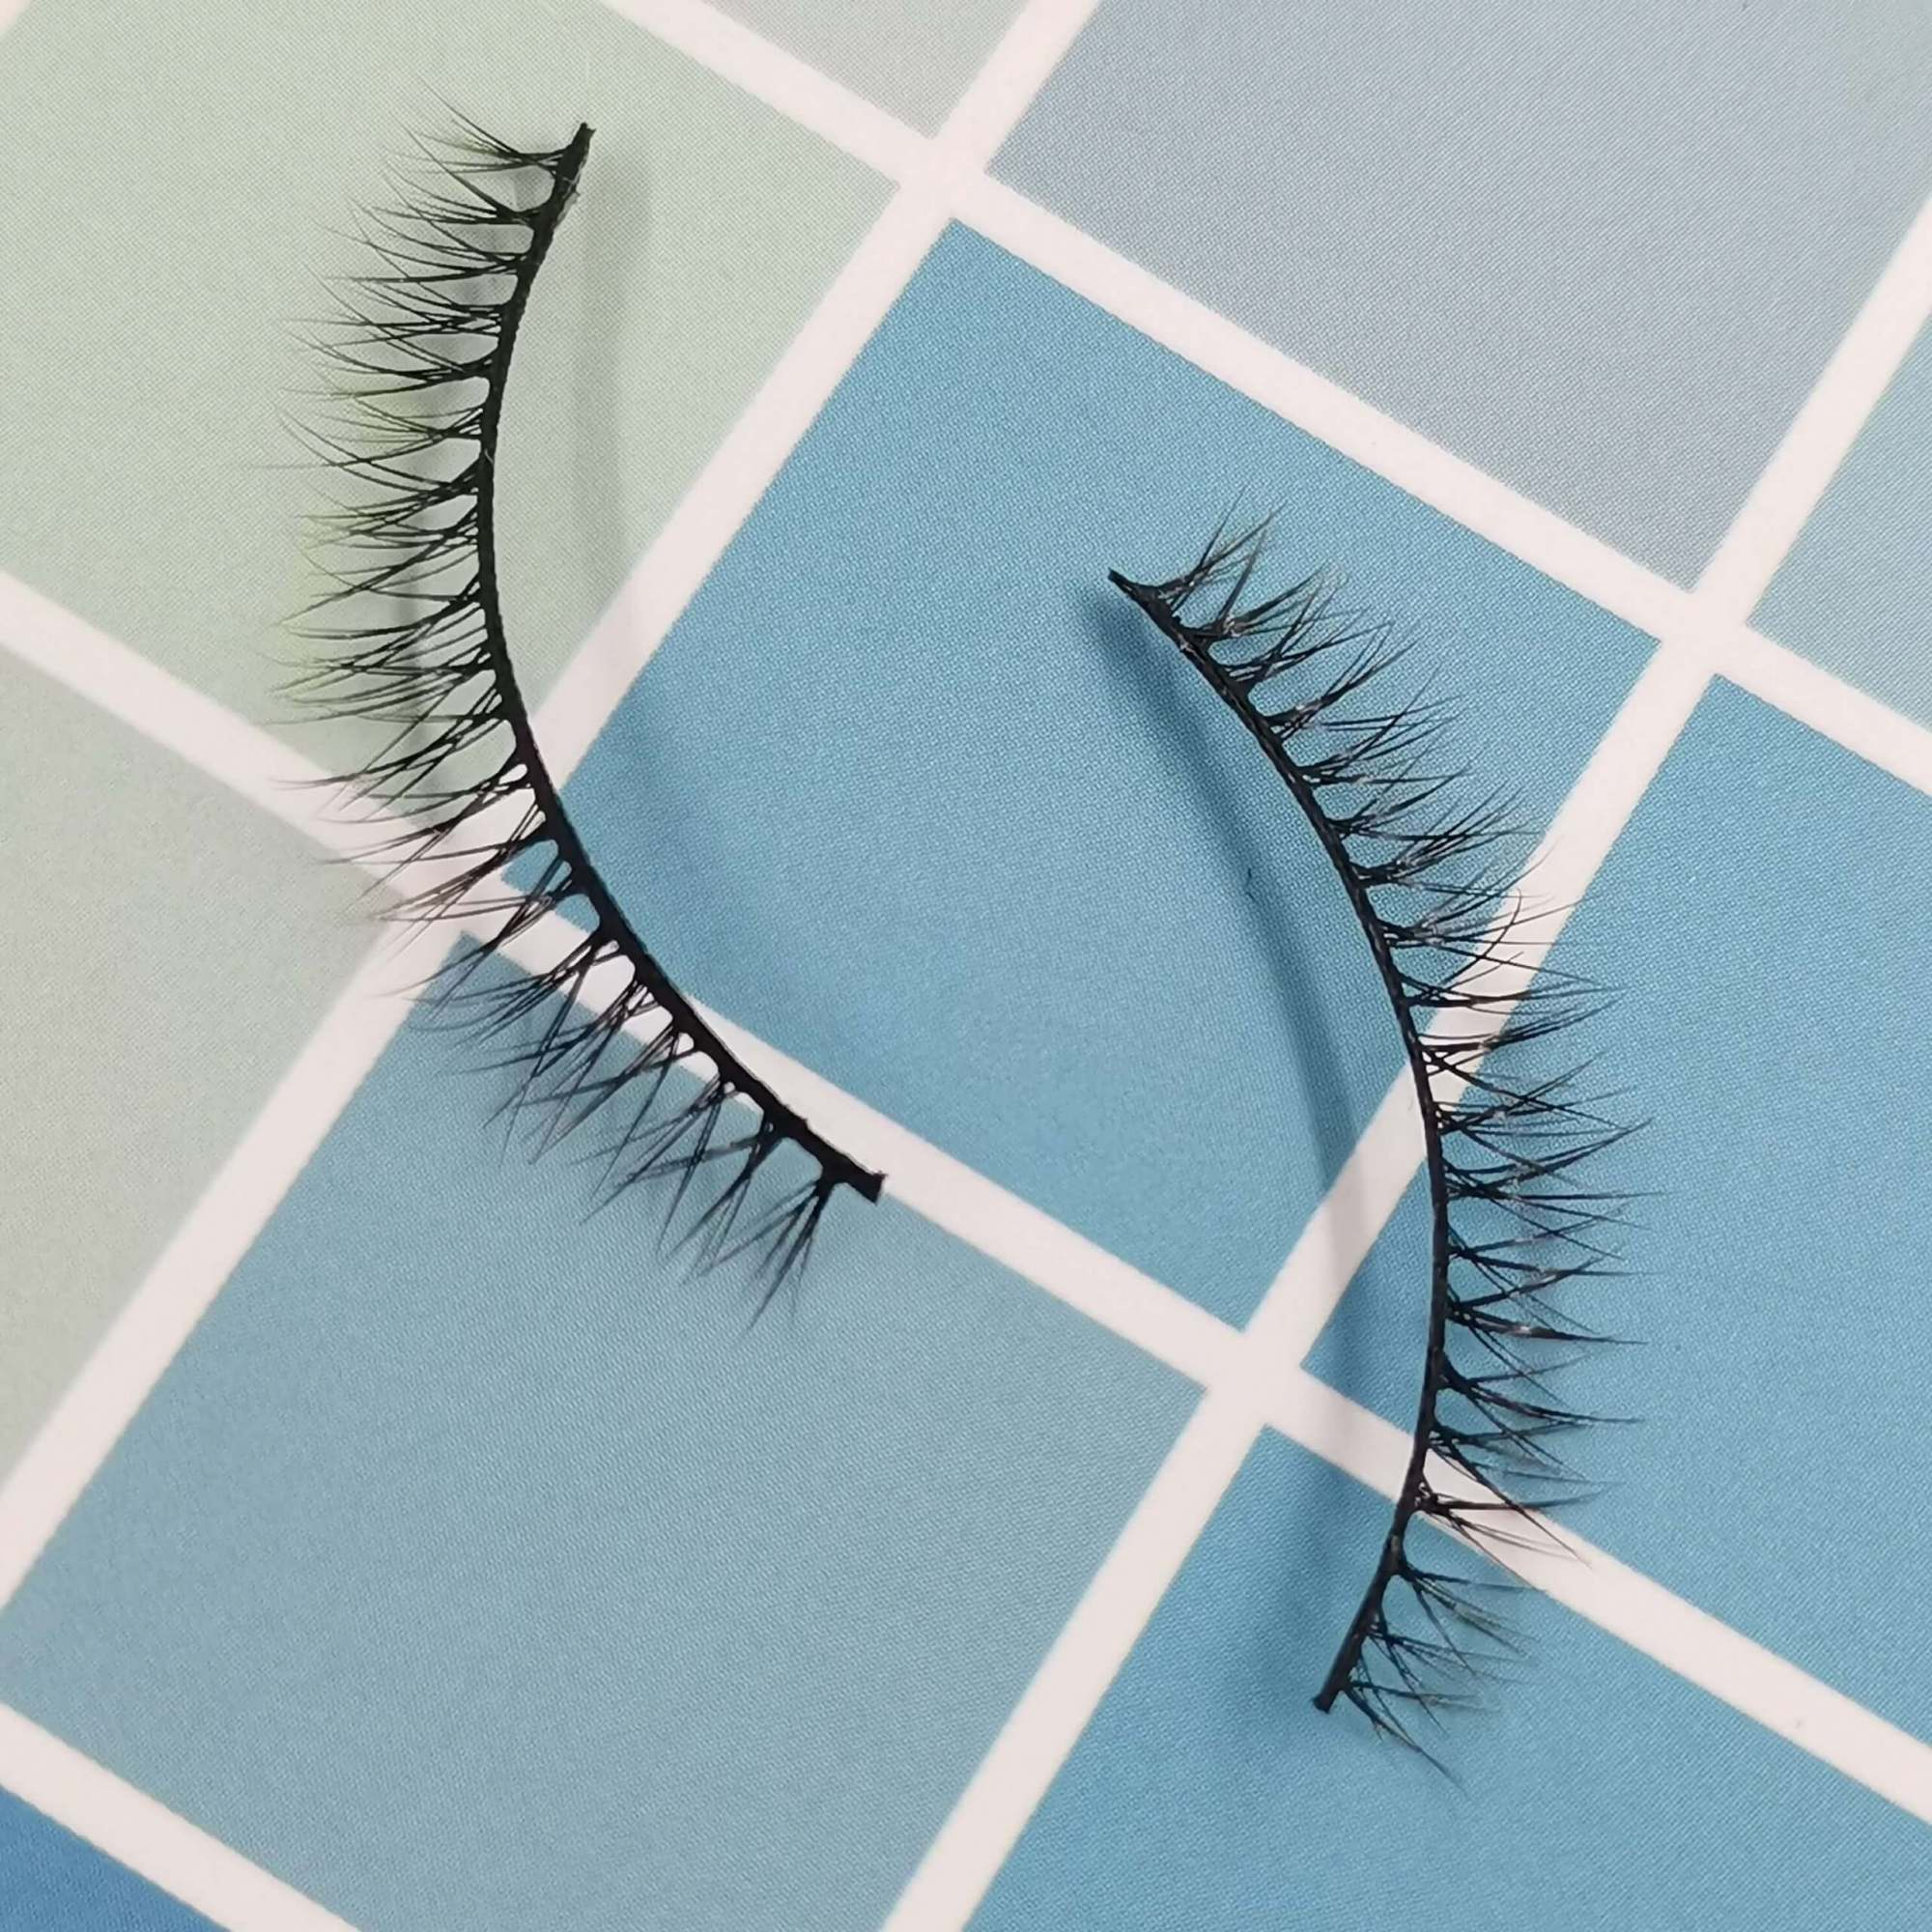 A pair of bottom eyelashes for your eye shape and its model is x004. Trust me, ProluxuryLashes brand is the best eyelash supplier